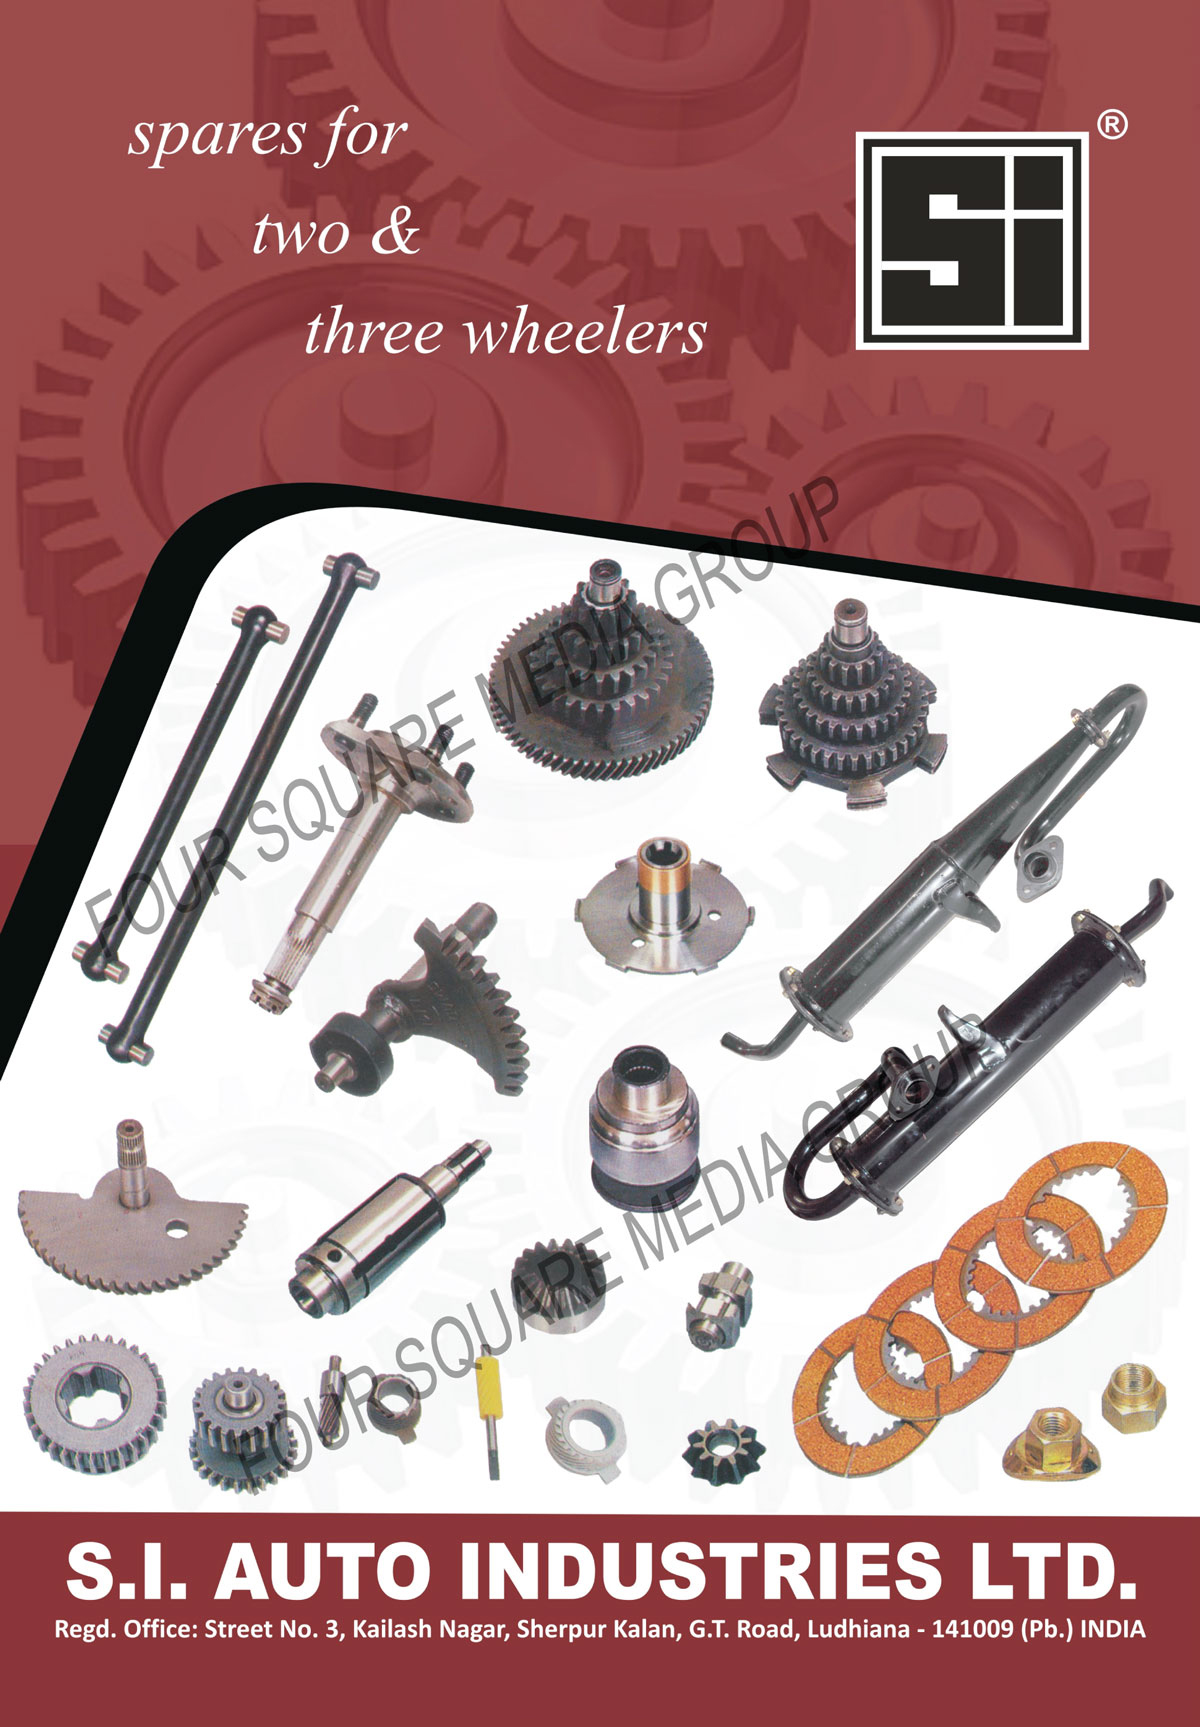 Automotive Spare Parts, Two Wheeler Spare Parts, 2 Wheeler Spare Parts, Three Wheeler Spare Parts, 3 Wheeler Spare Parts